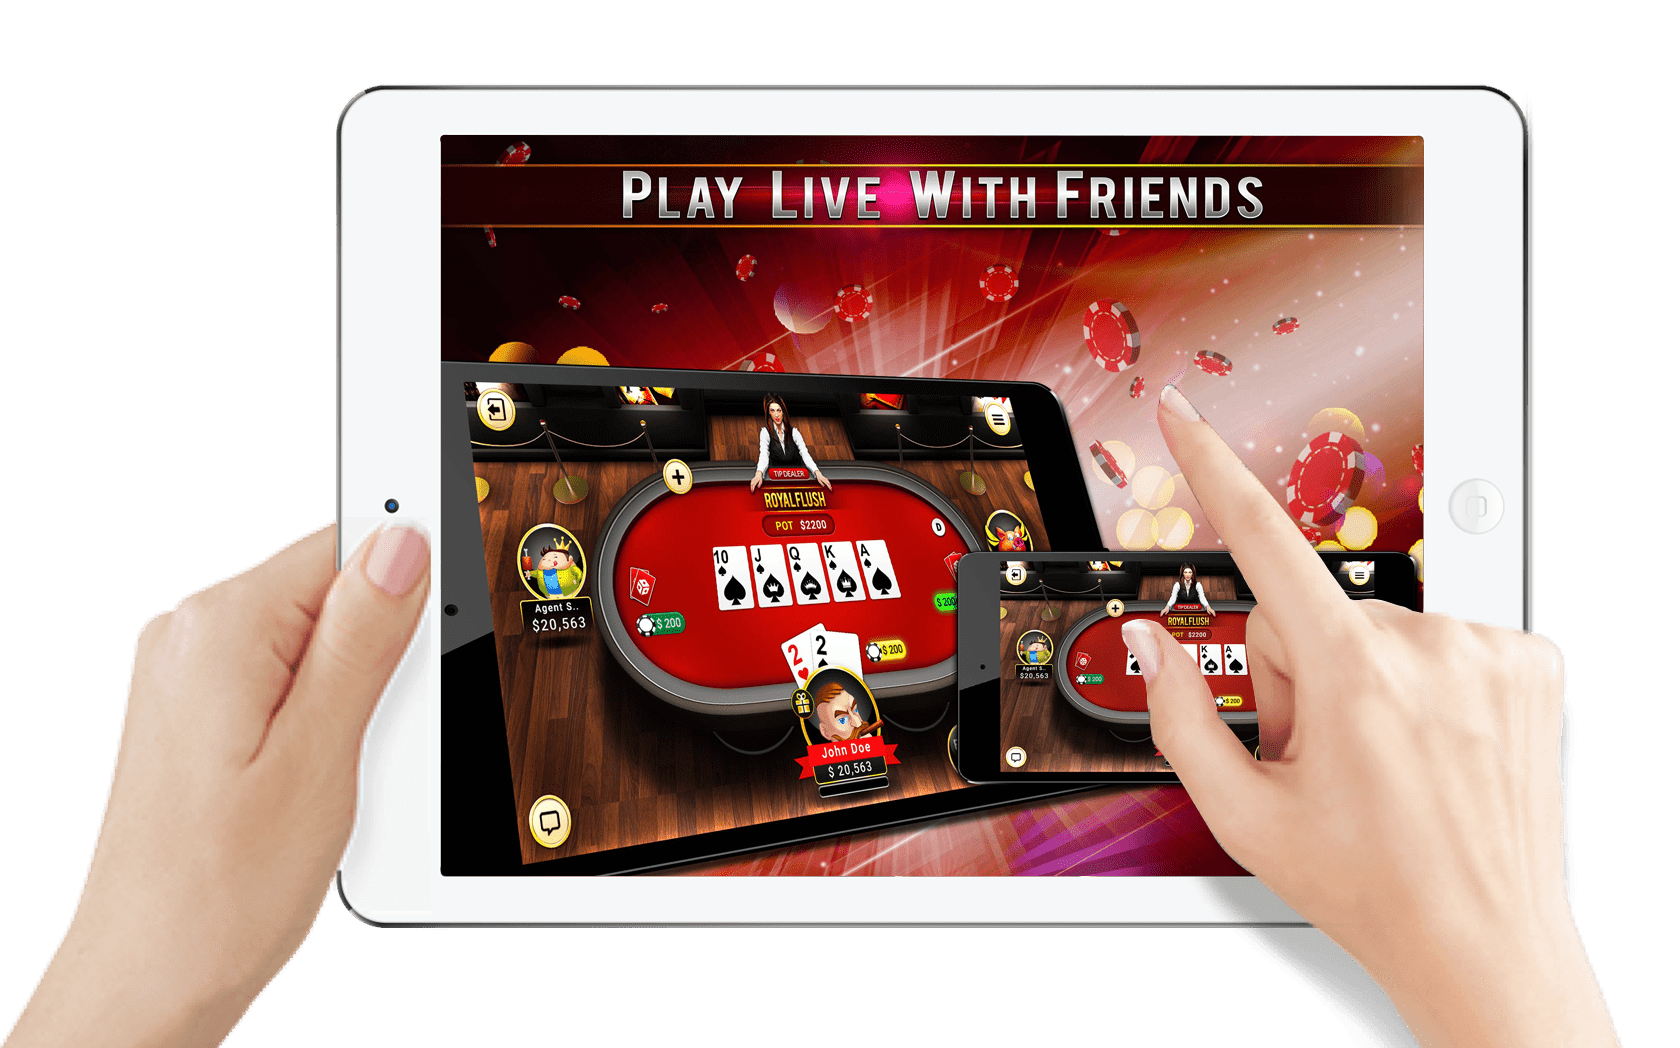 Fast, fun and free to play Poker game on your mobile